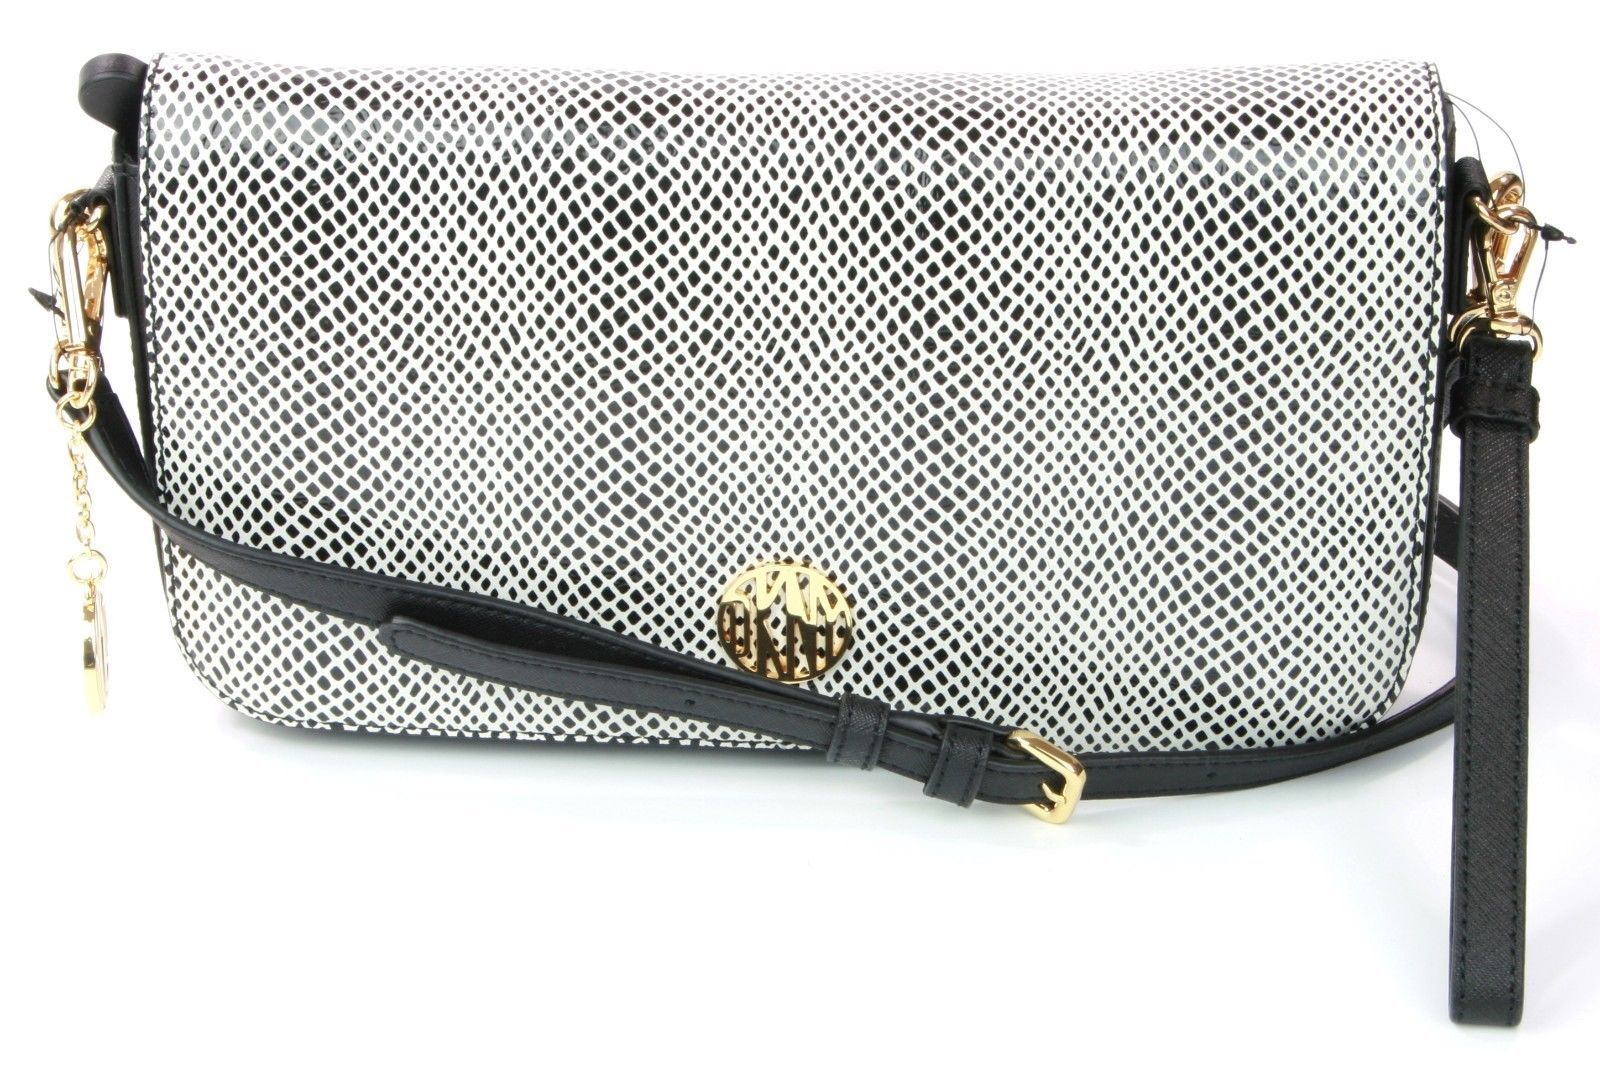 DKNY Donna Karan Black White Snakeskin Embossed Cross Body Bag Clutch